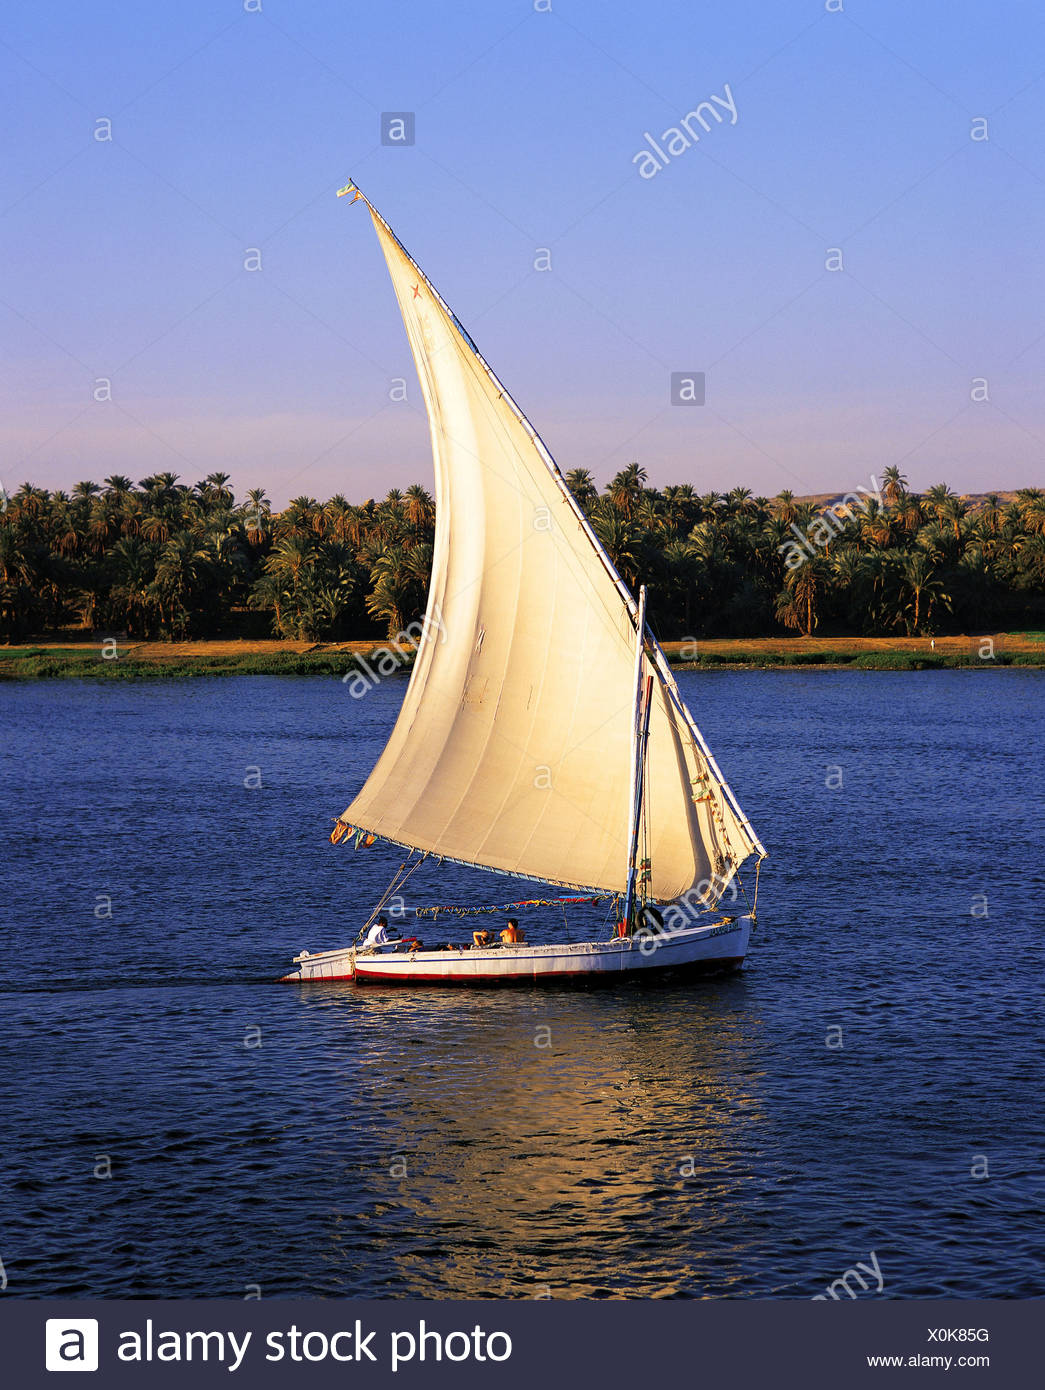 sailing boat felucca on the Nile, Egypt, Luxor - Stock Image